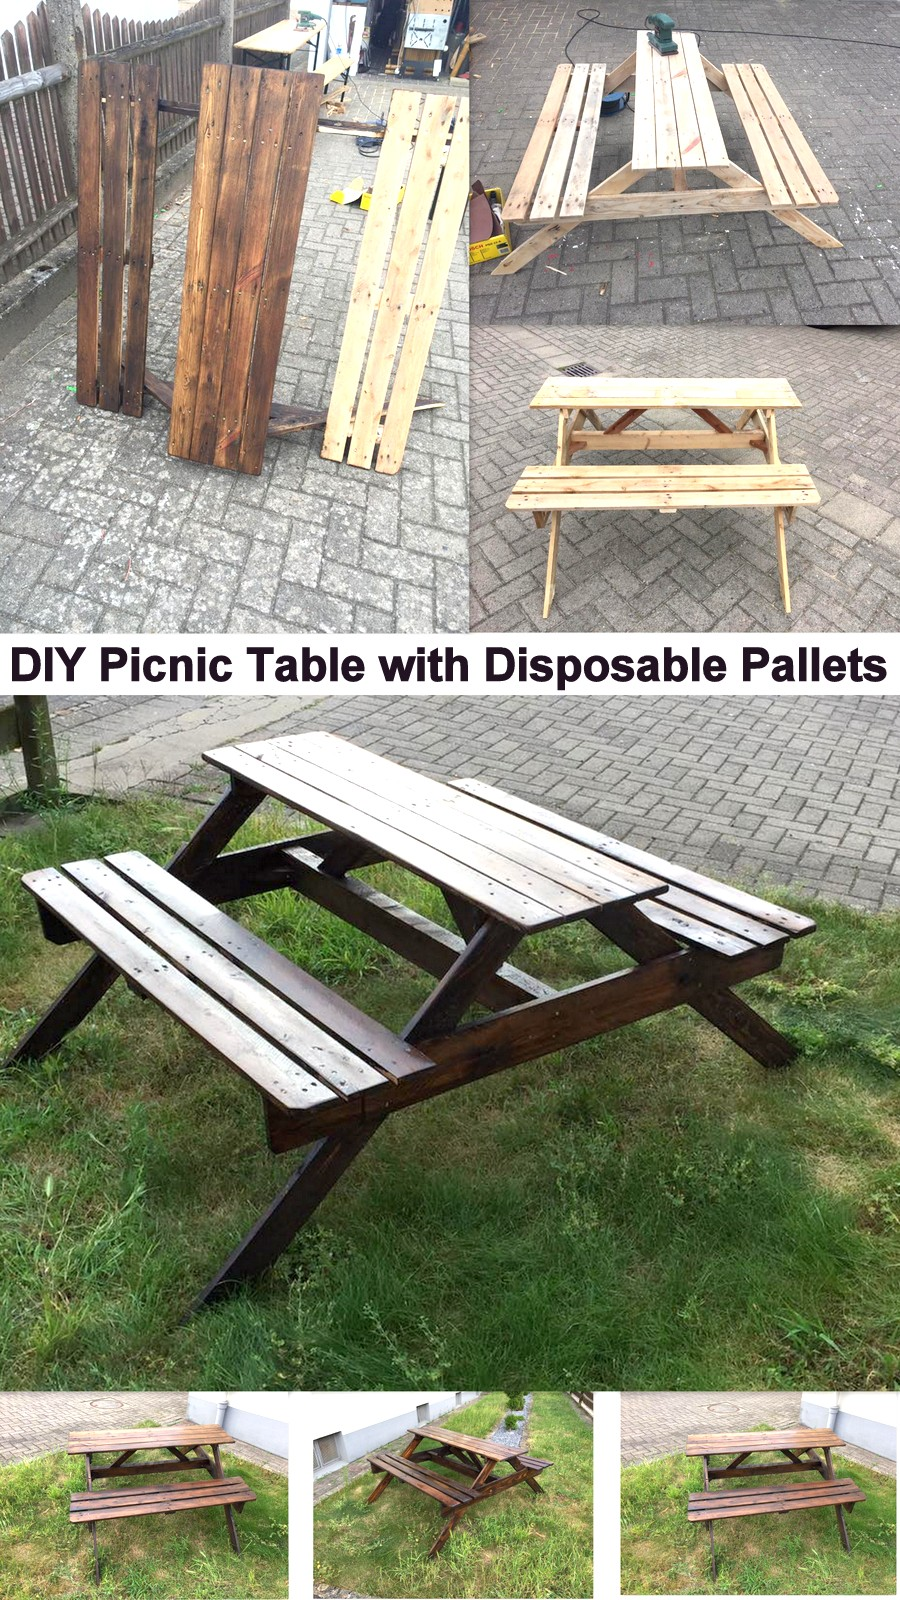 DIY Picnic Table with Disposable Pallets